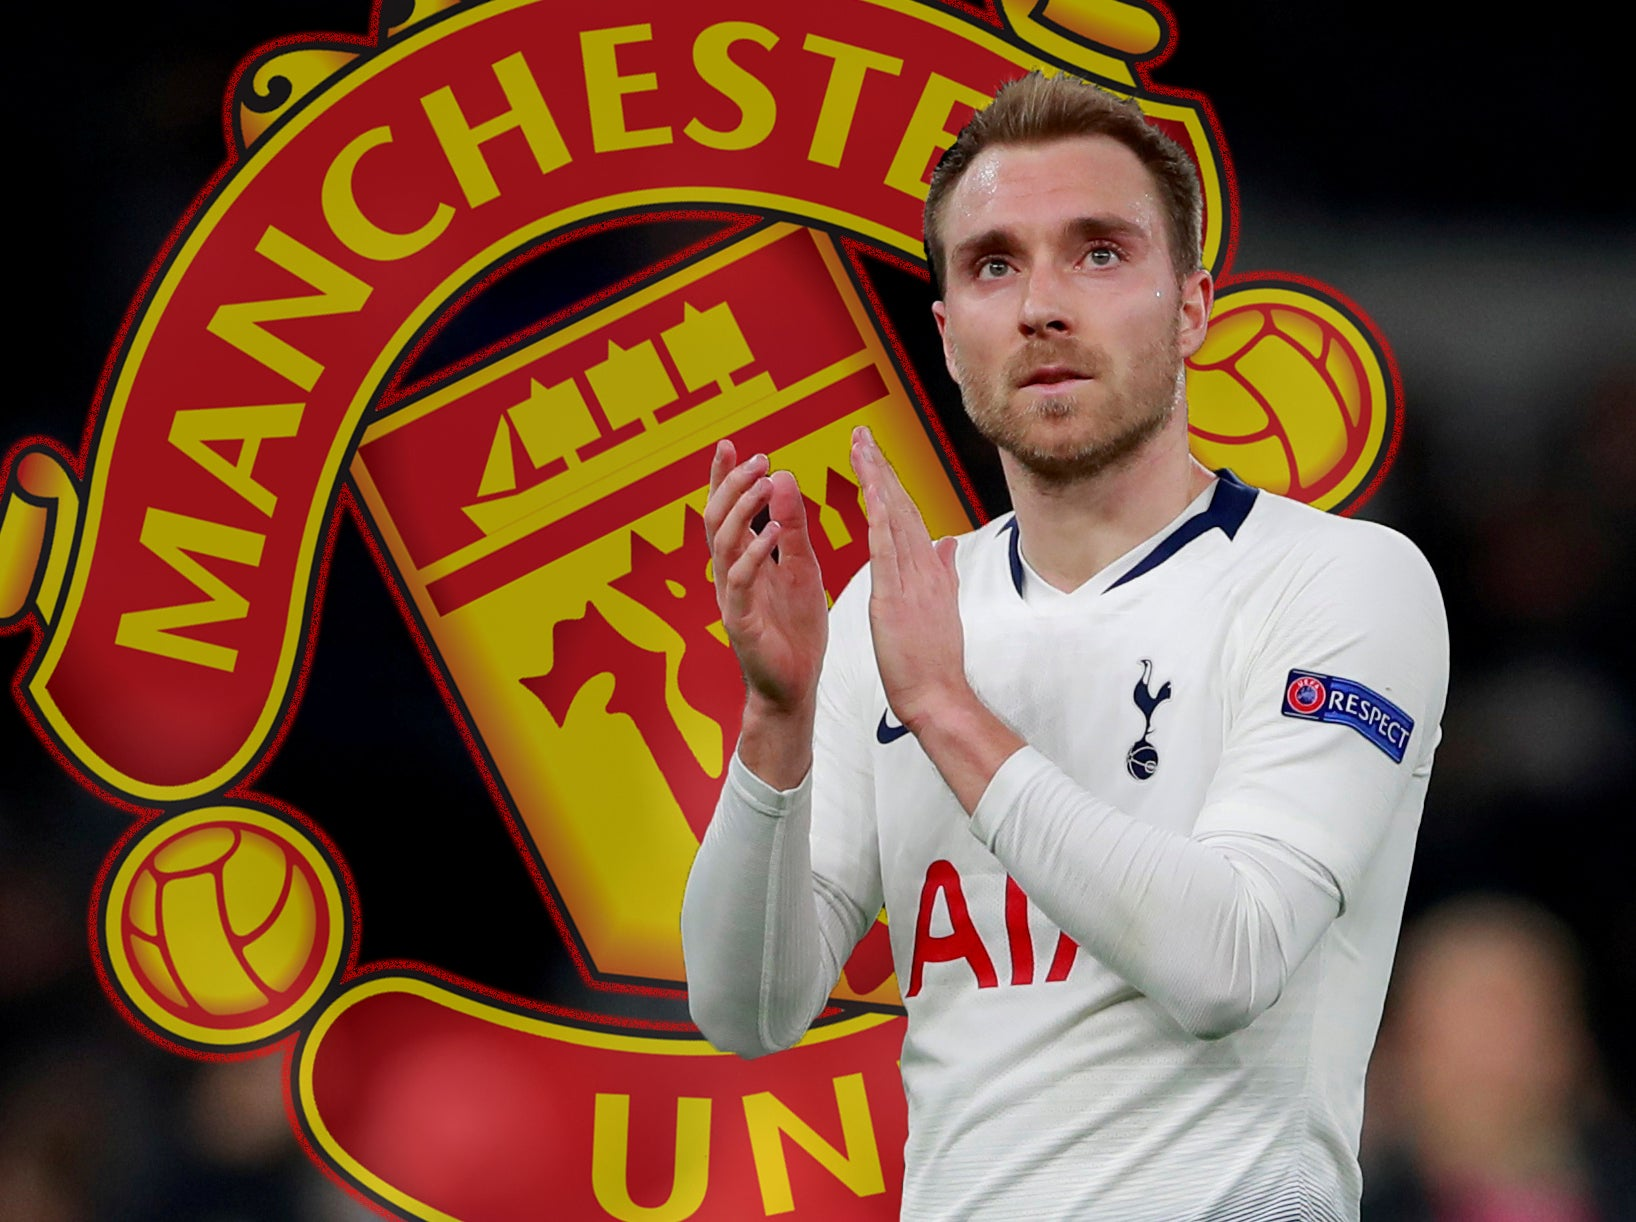 Man Utd Transfer News Club To Bid For Eriksen After Pochettino Fall Out The Independent The Independent